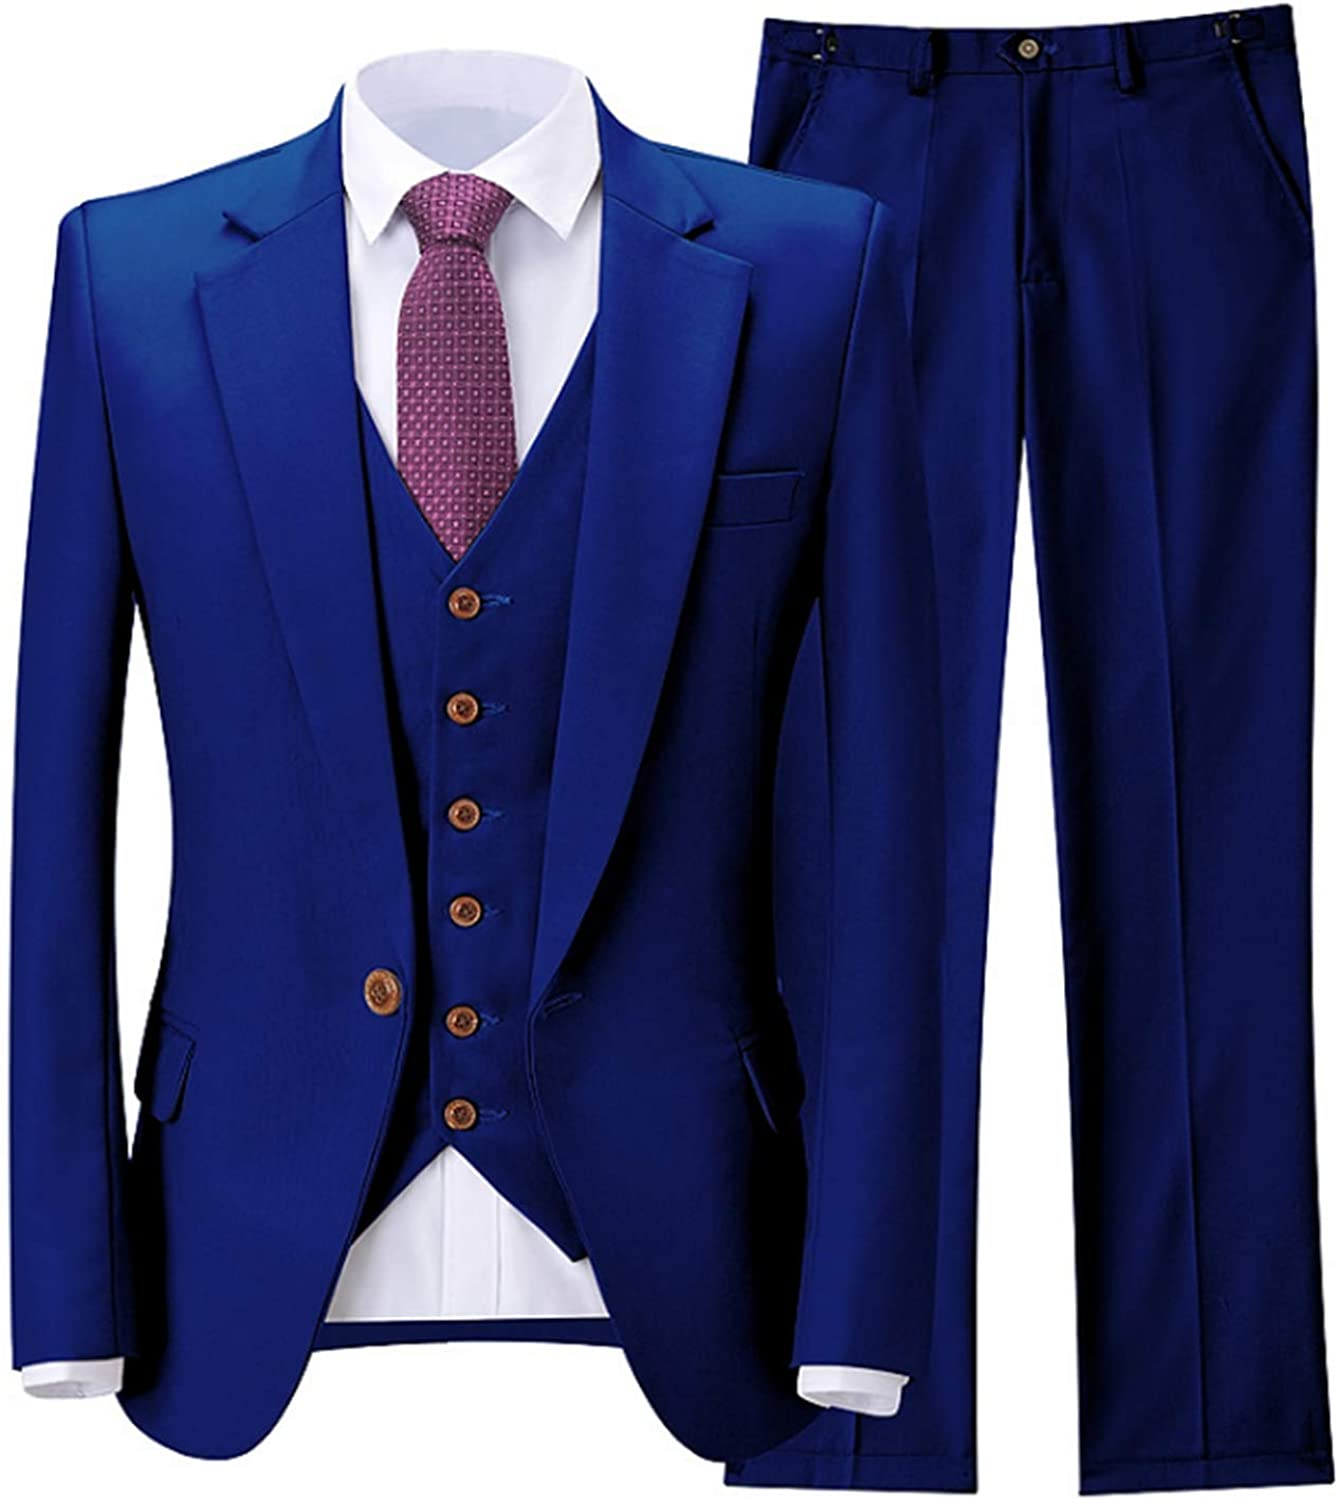 Men's Suits Blue Blazer Leisure Jackets Party Tuxedos Tailored Morning Suits Blazer